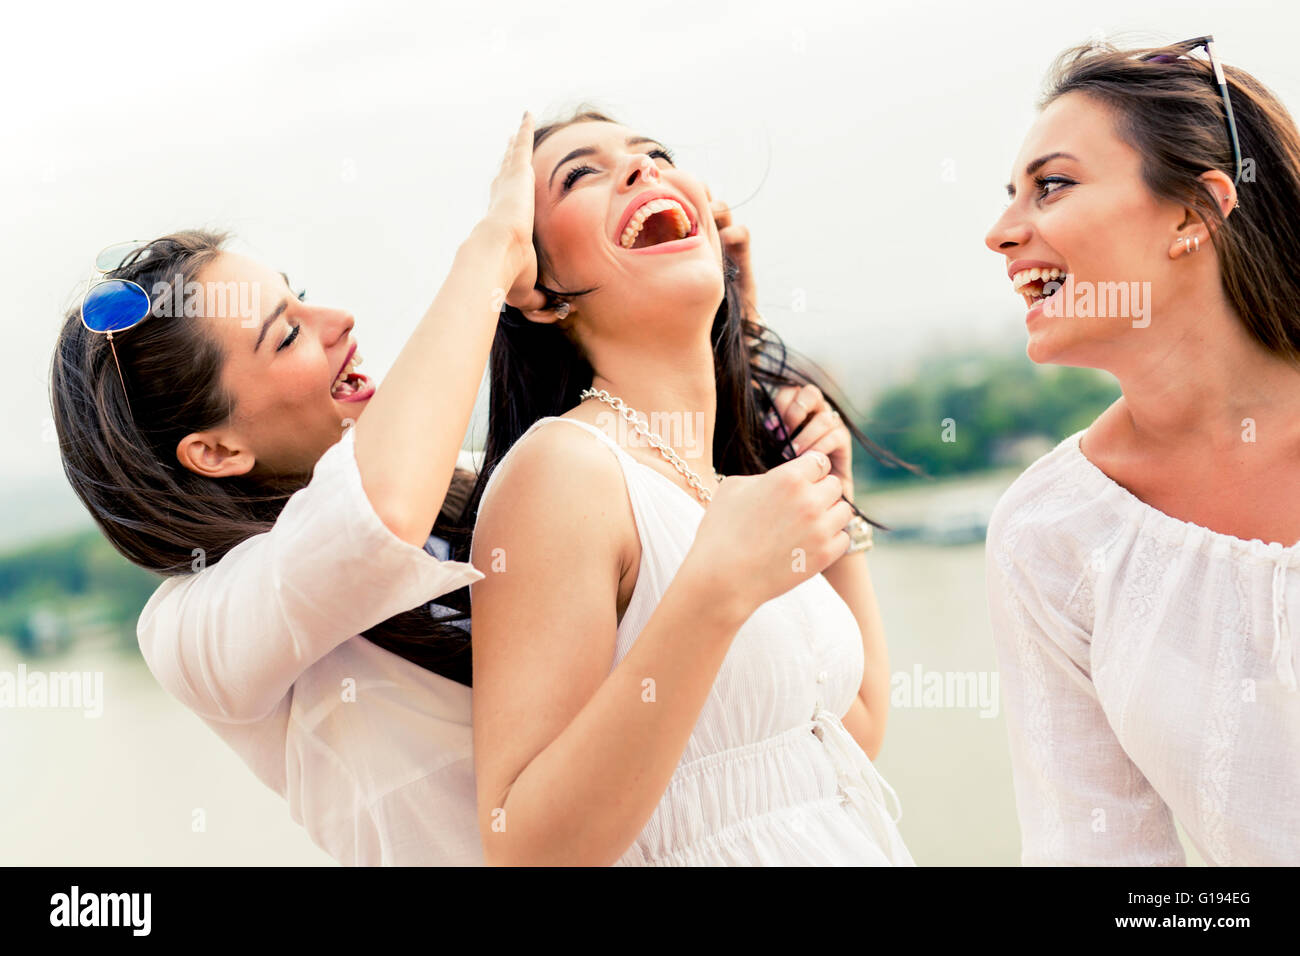 Cheerful women having fun outdoors and laughing happily - Stock Image